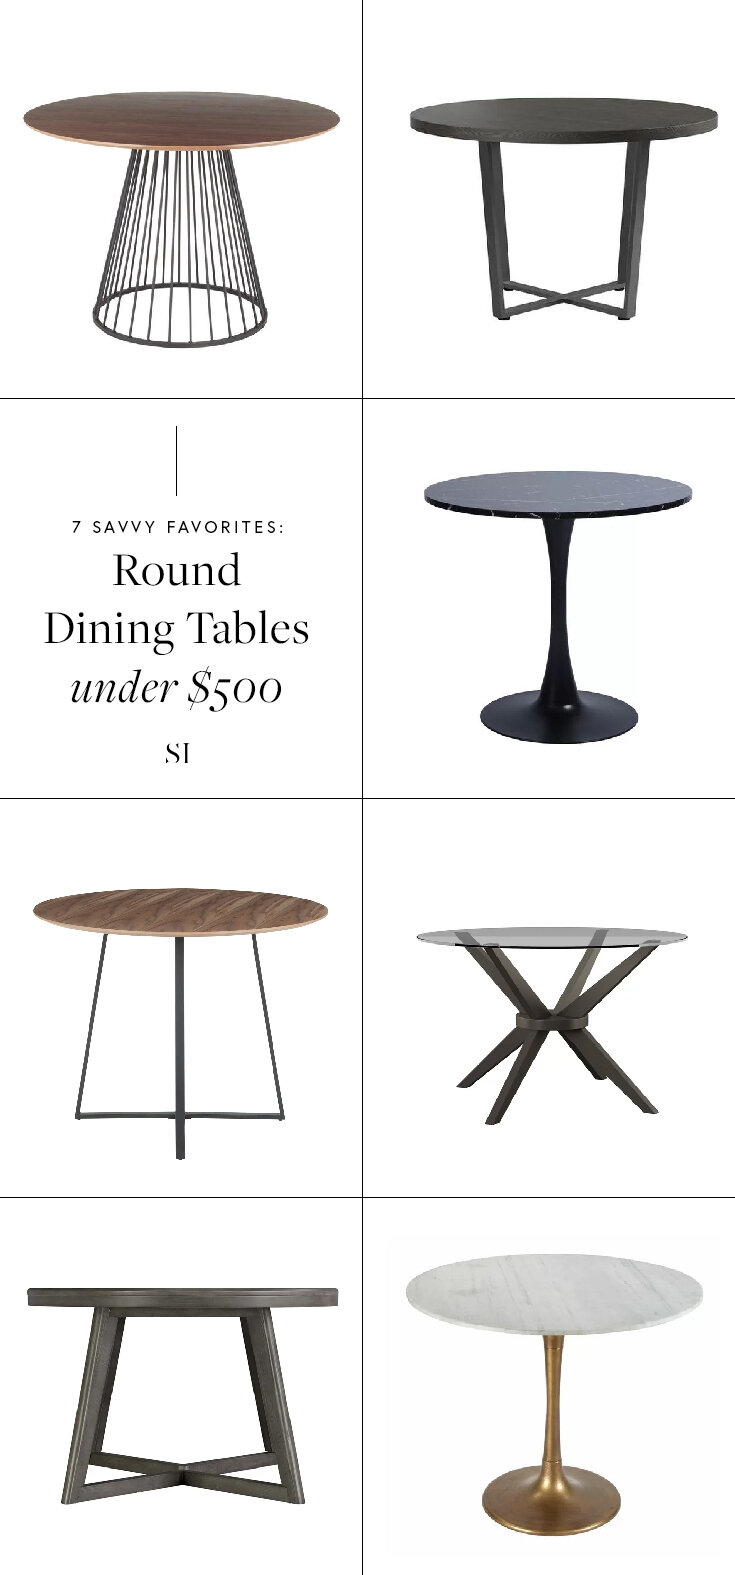 Savvy Favorites Contemporary Modern Round Dining Room Tables The Savvy Heart Interior Design Décor And Diy